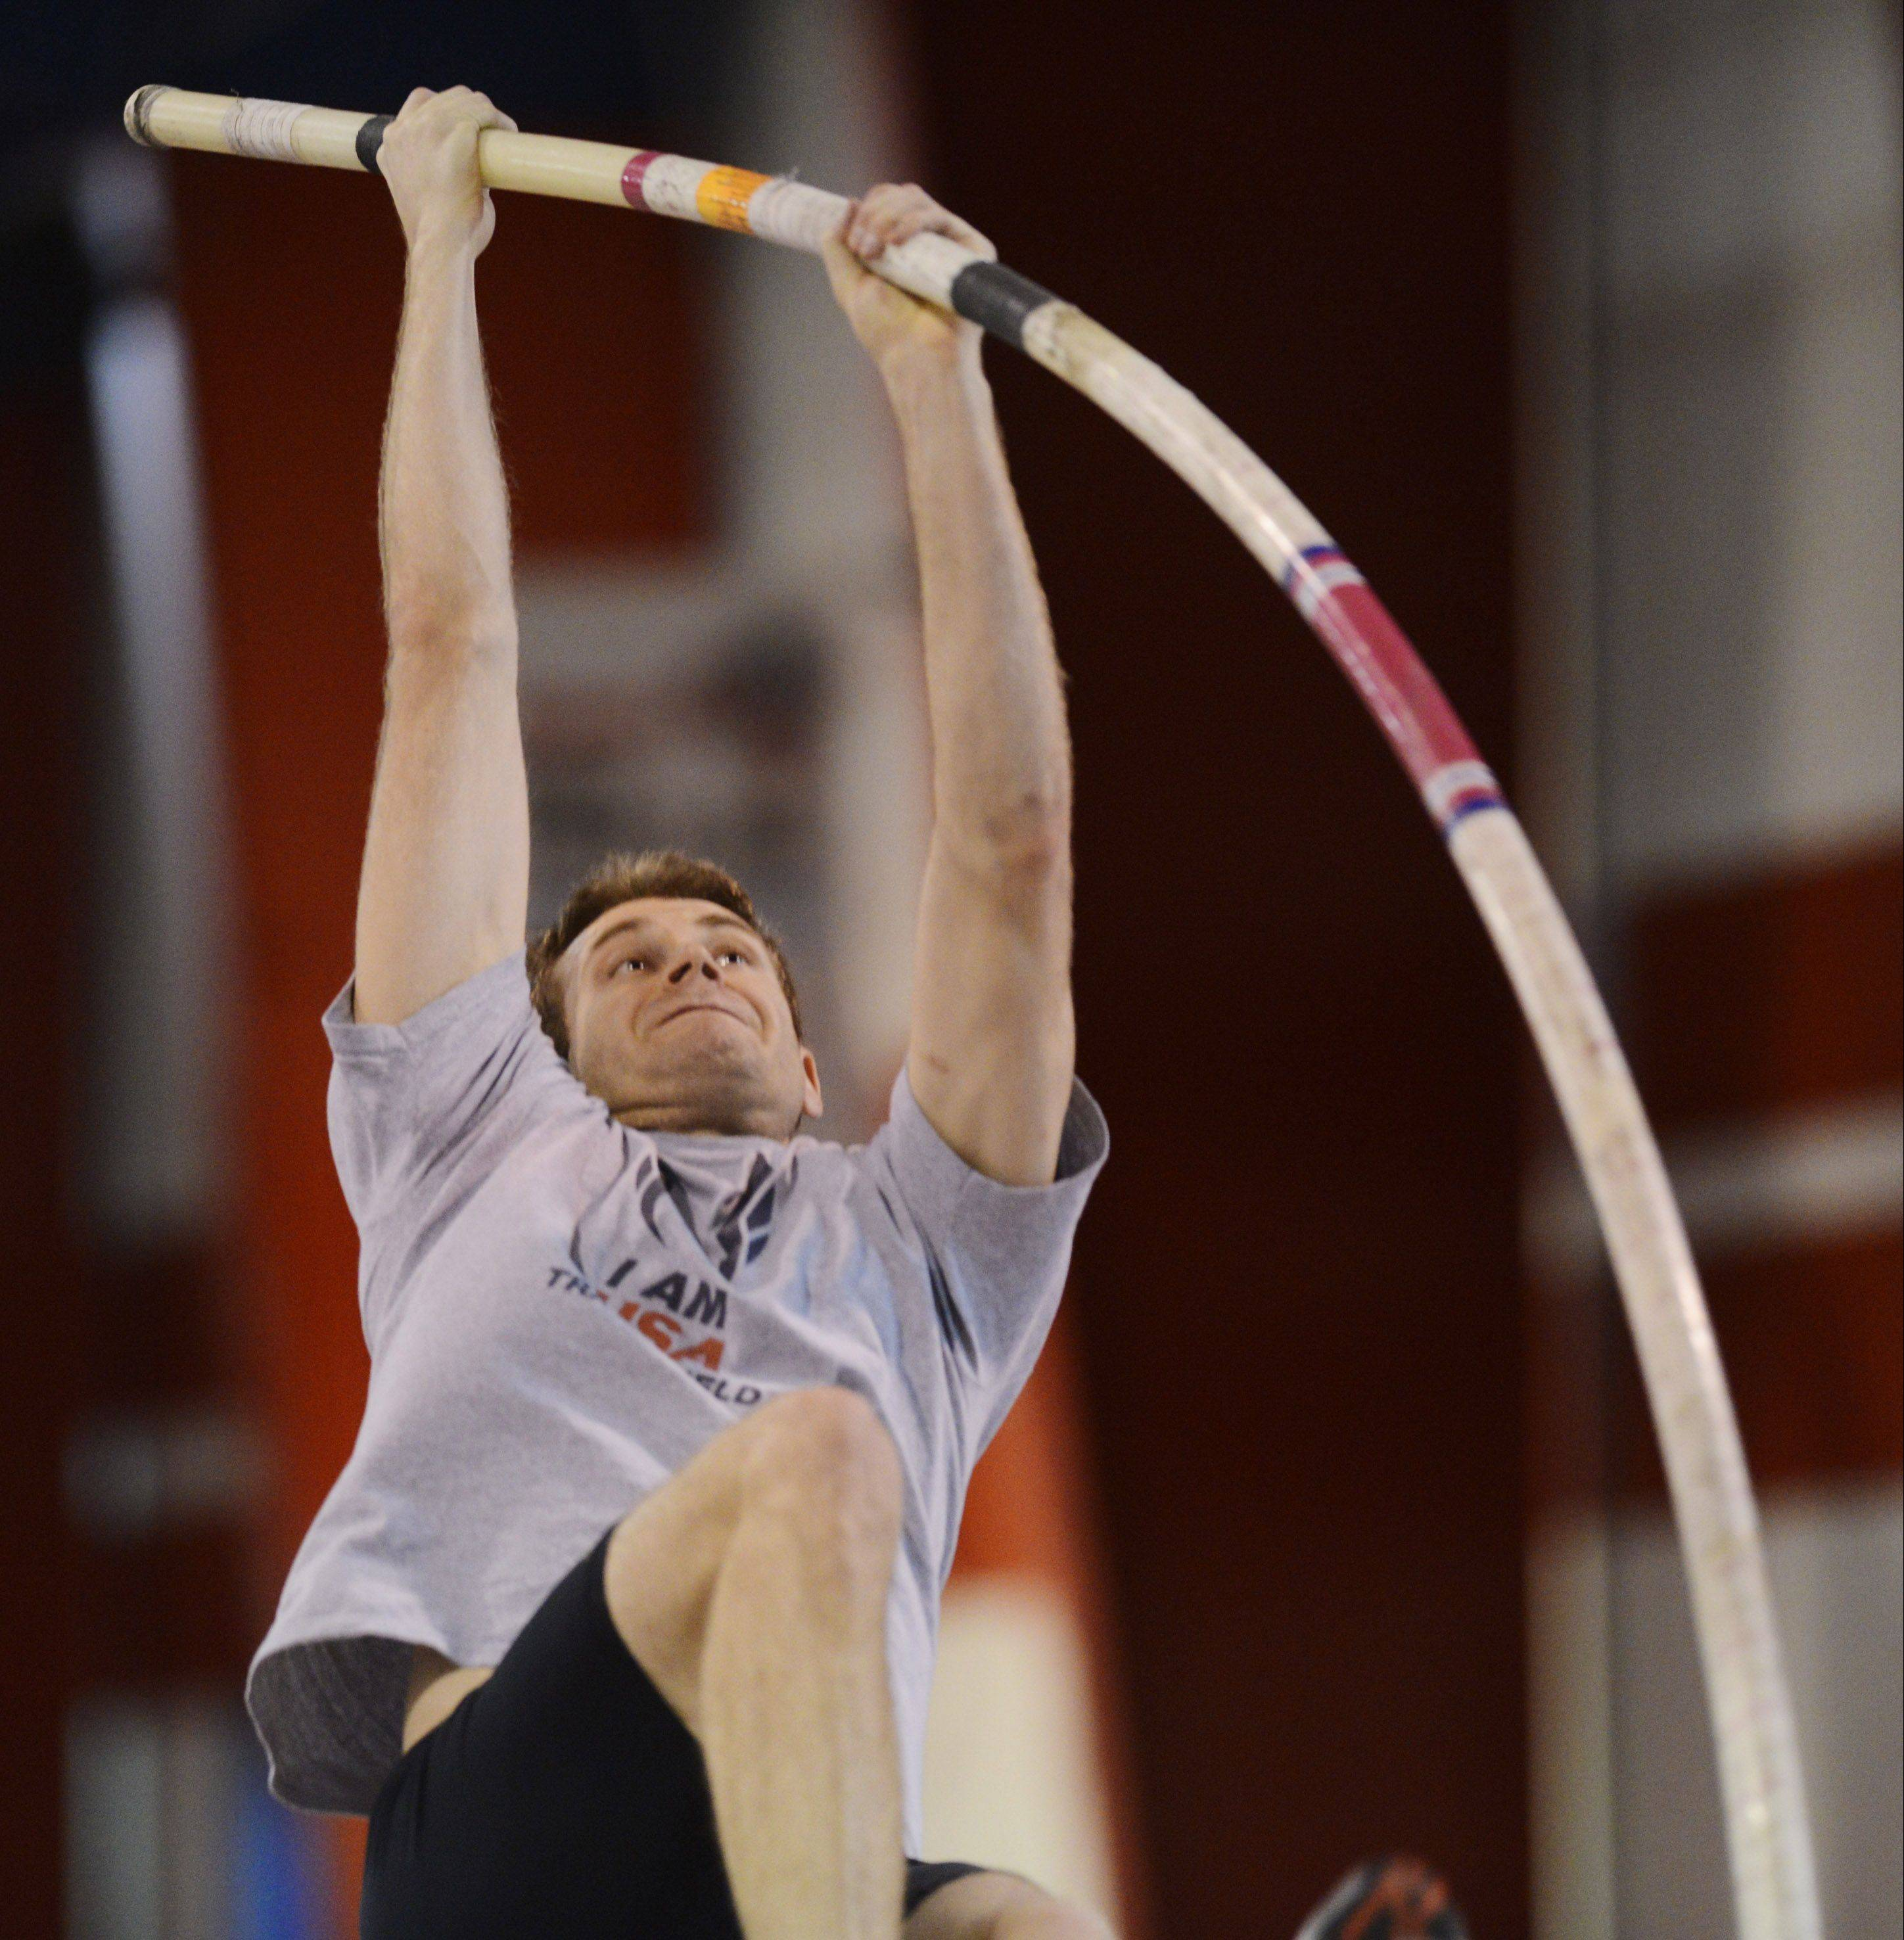 Pole vaulter Darren Niedermeyer makes a jump while working out at the Lewis University Field House.